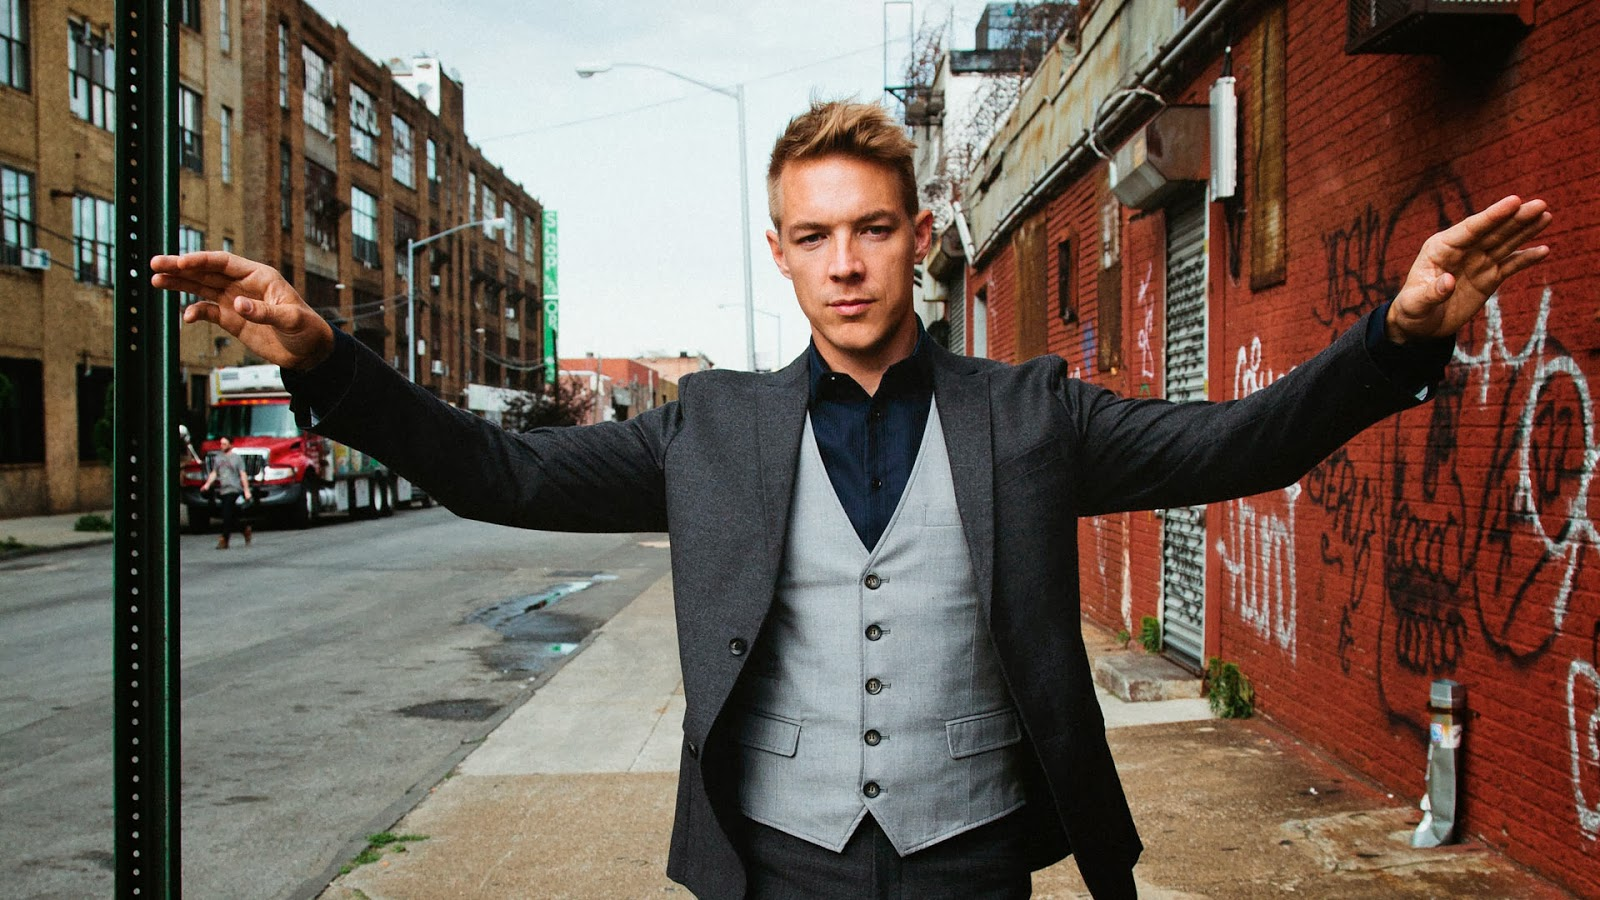 Diplo Responds With Statement About Kandi Ban